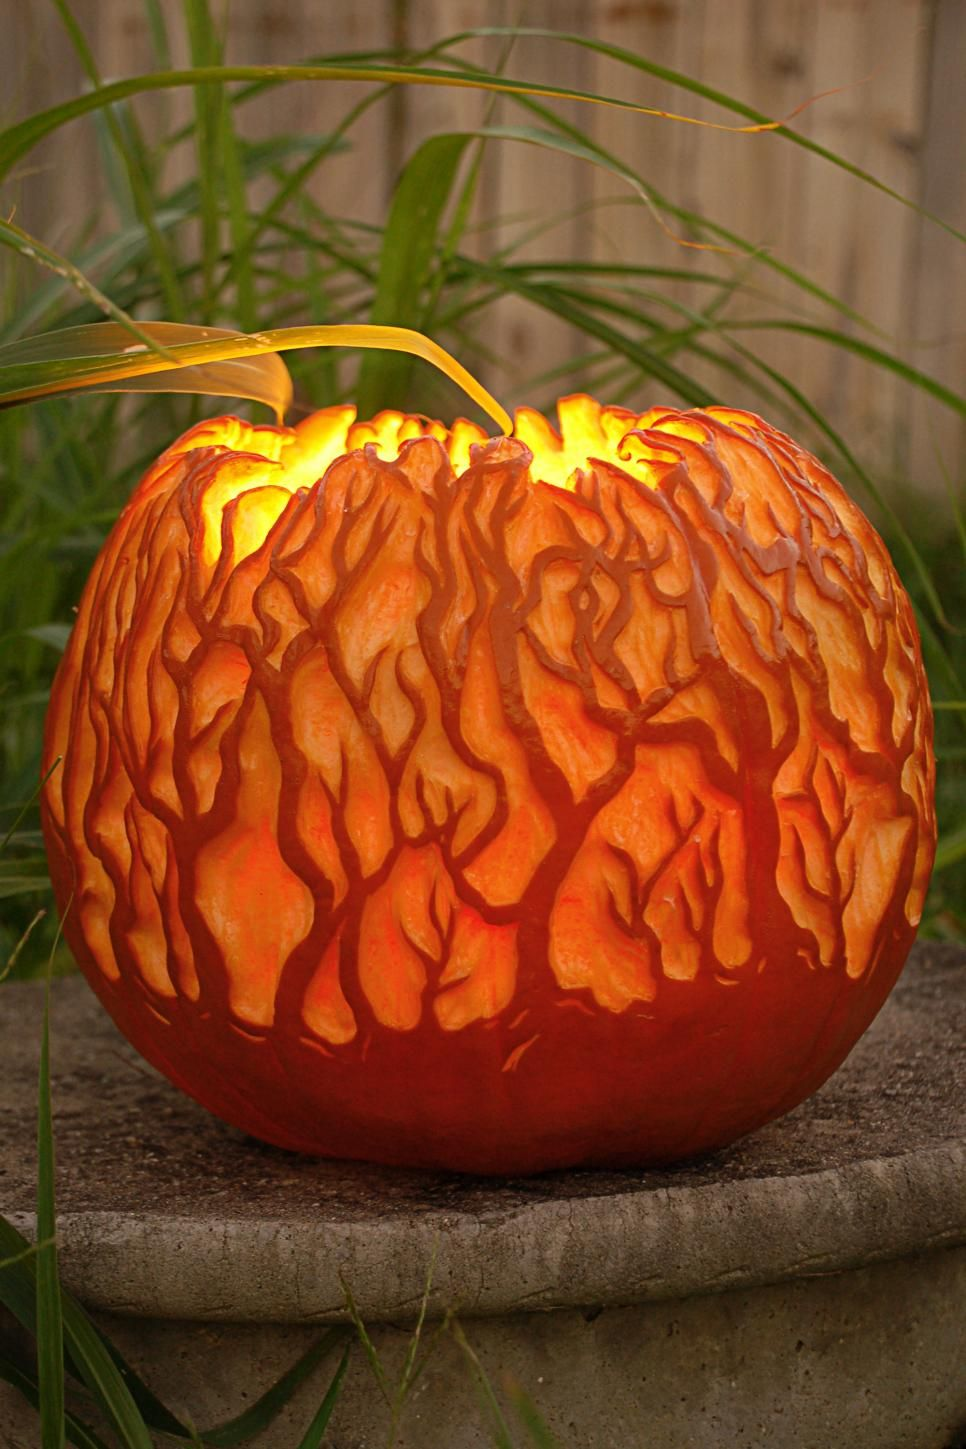 Easy cool and scary diy pumpkin carving ideas for